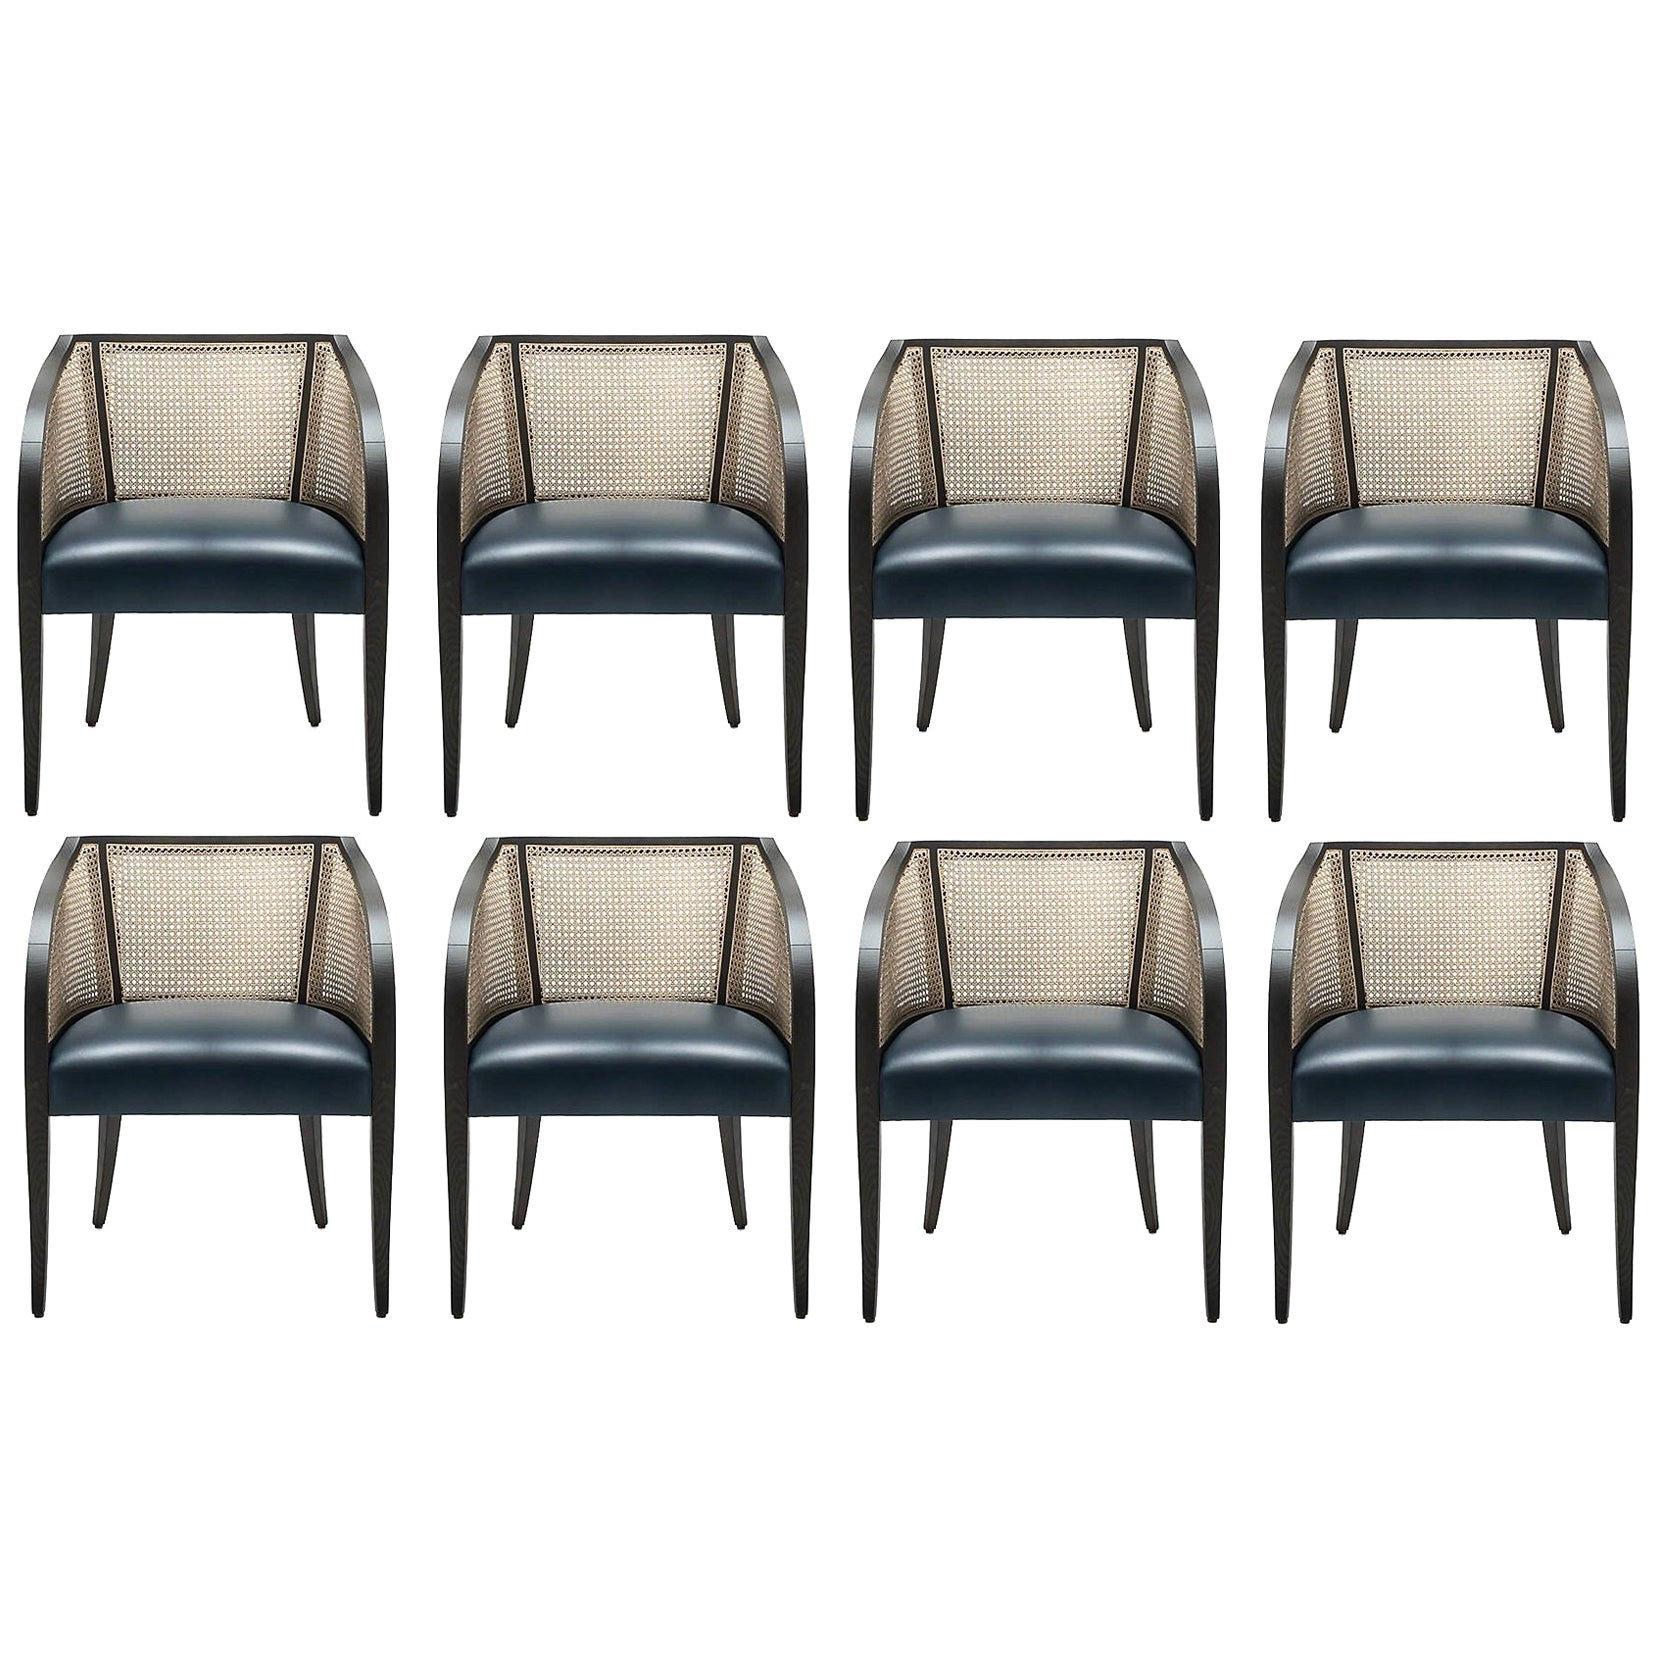 Contemporary Woven Cane Dining Chairs, Set of 8